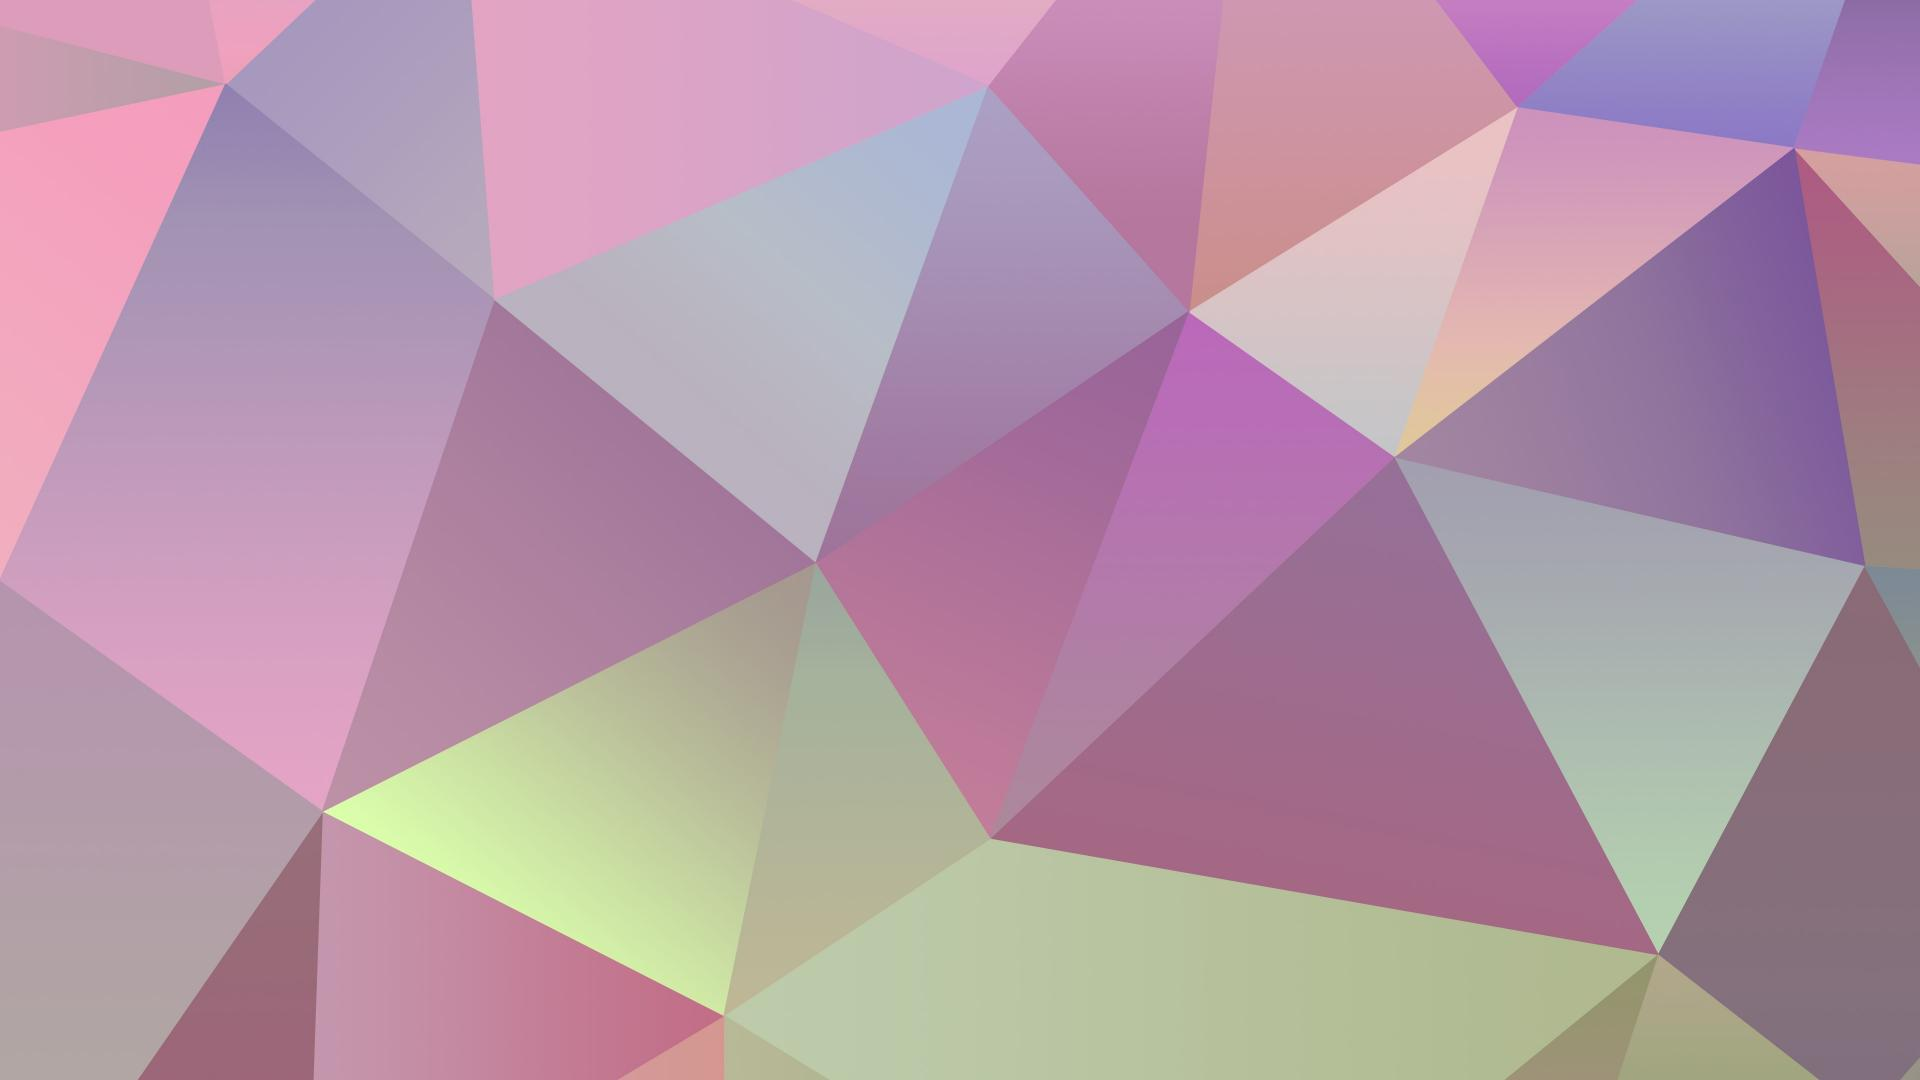 minimalistic jelly candy bean simple triangles clean wallpaper 1920x1080